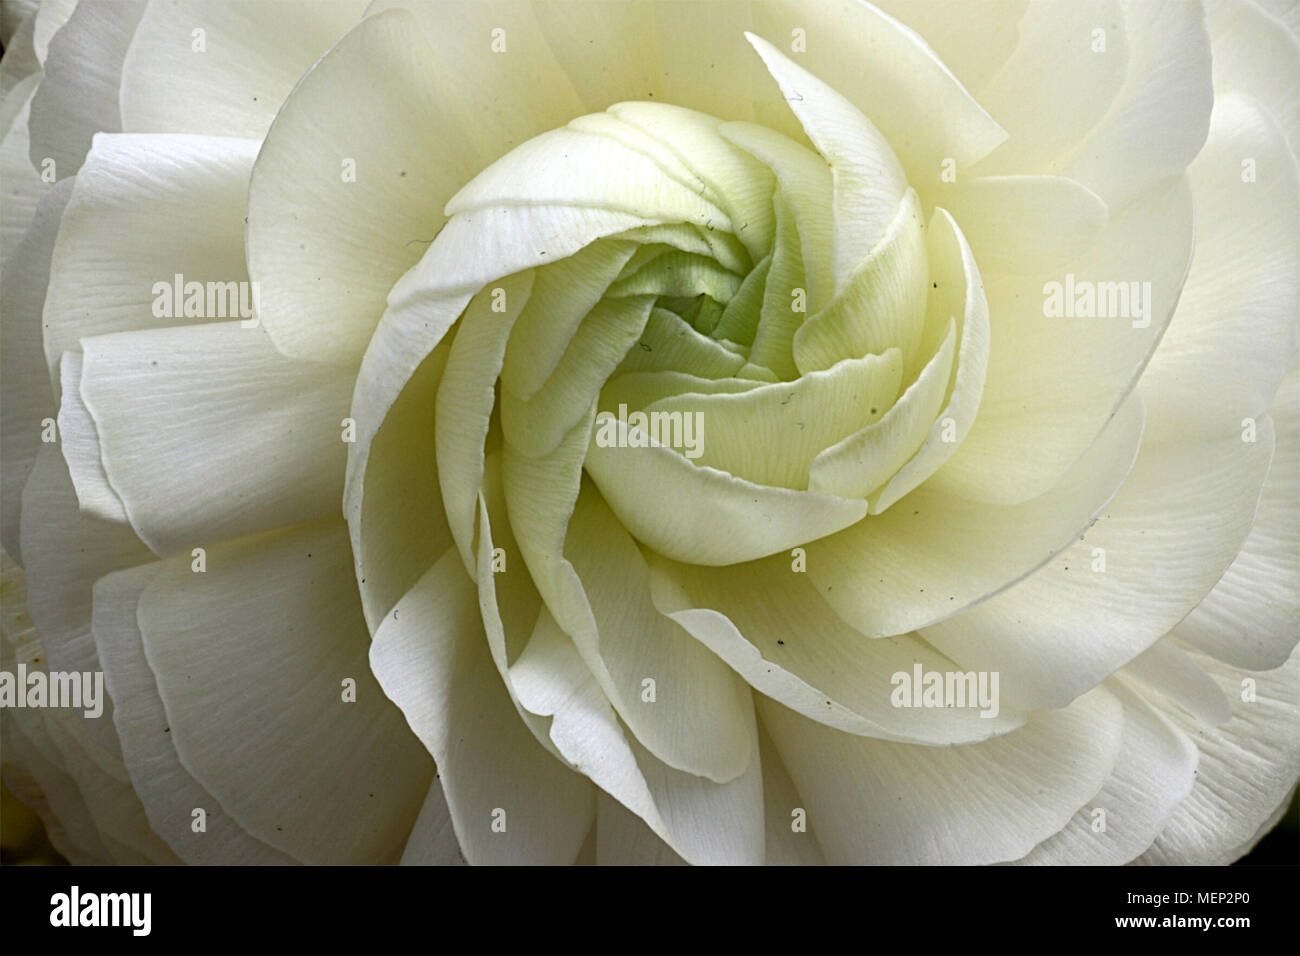 ranunculus flower with spiralling central petals Stock Photo